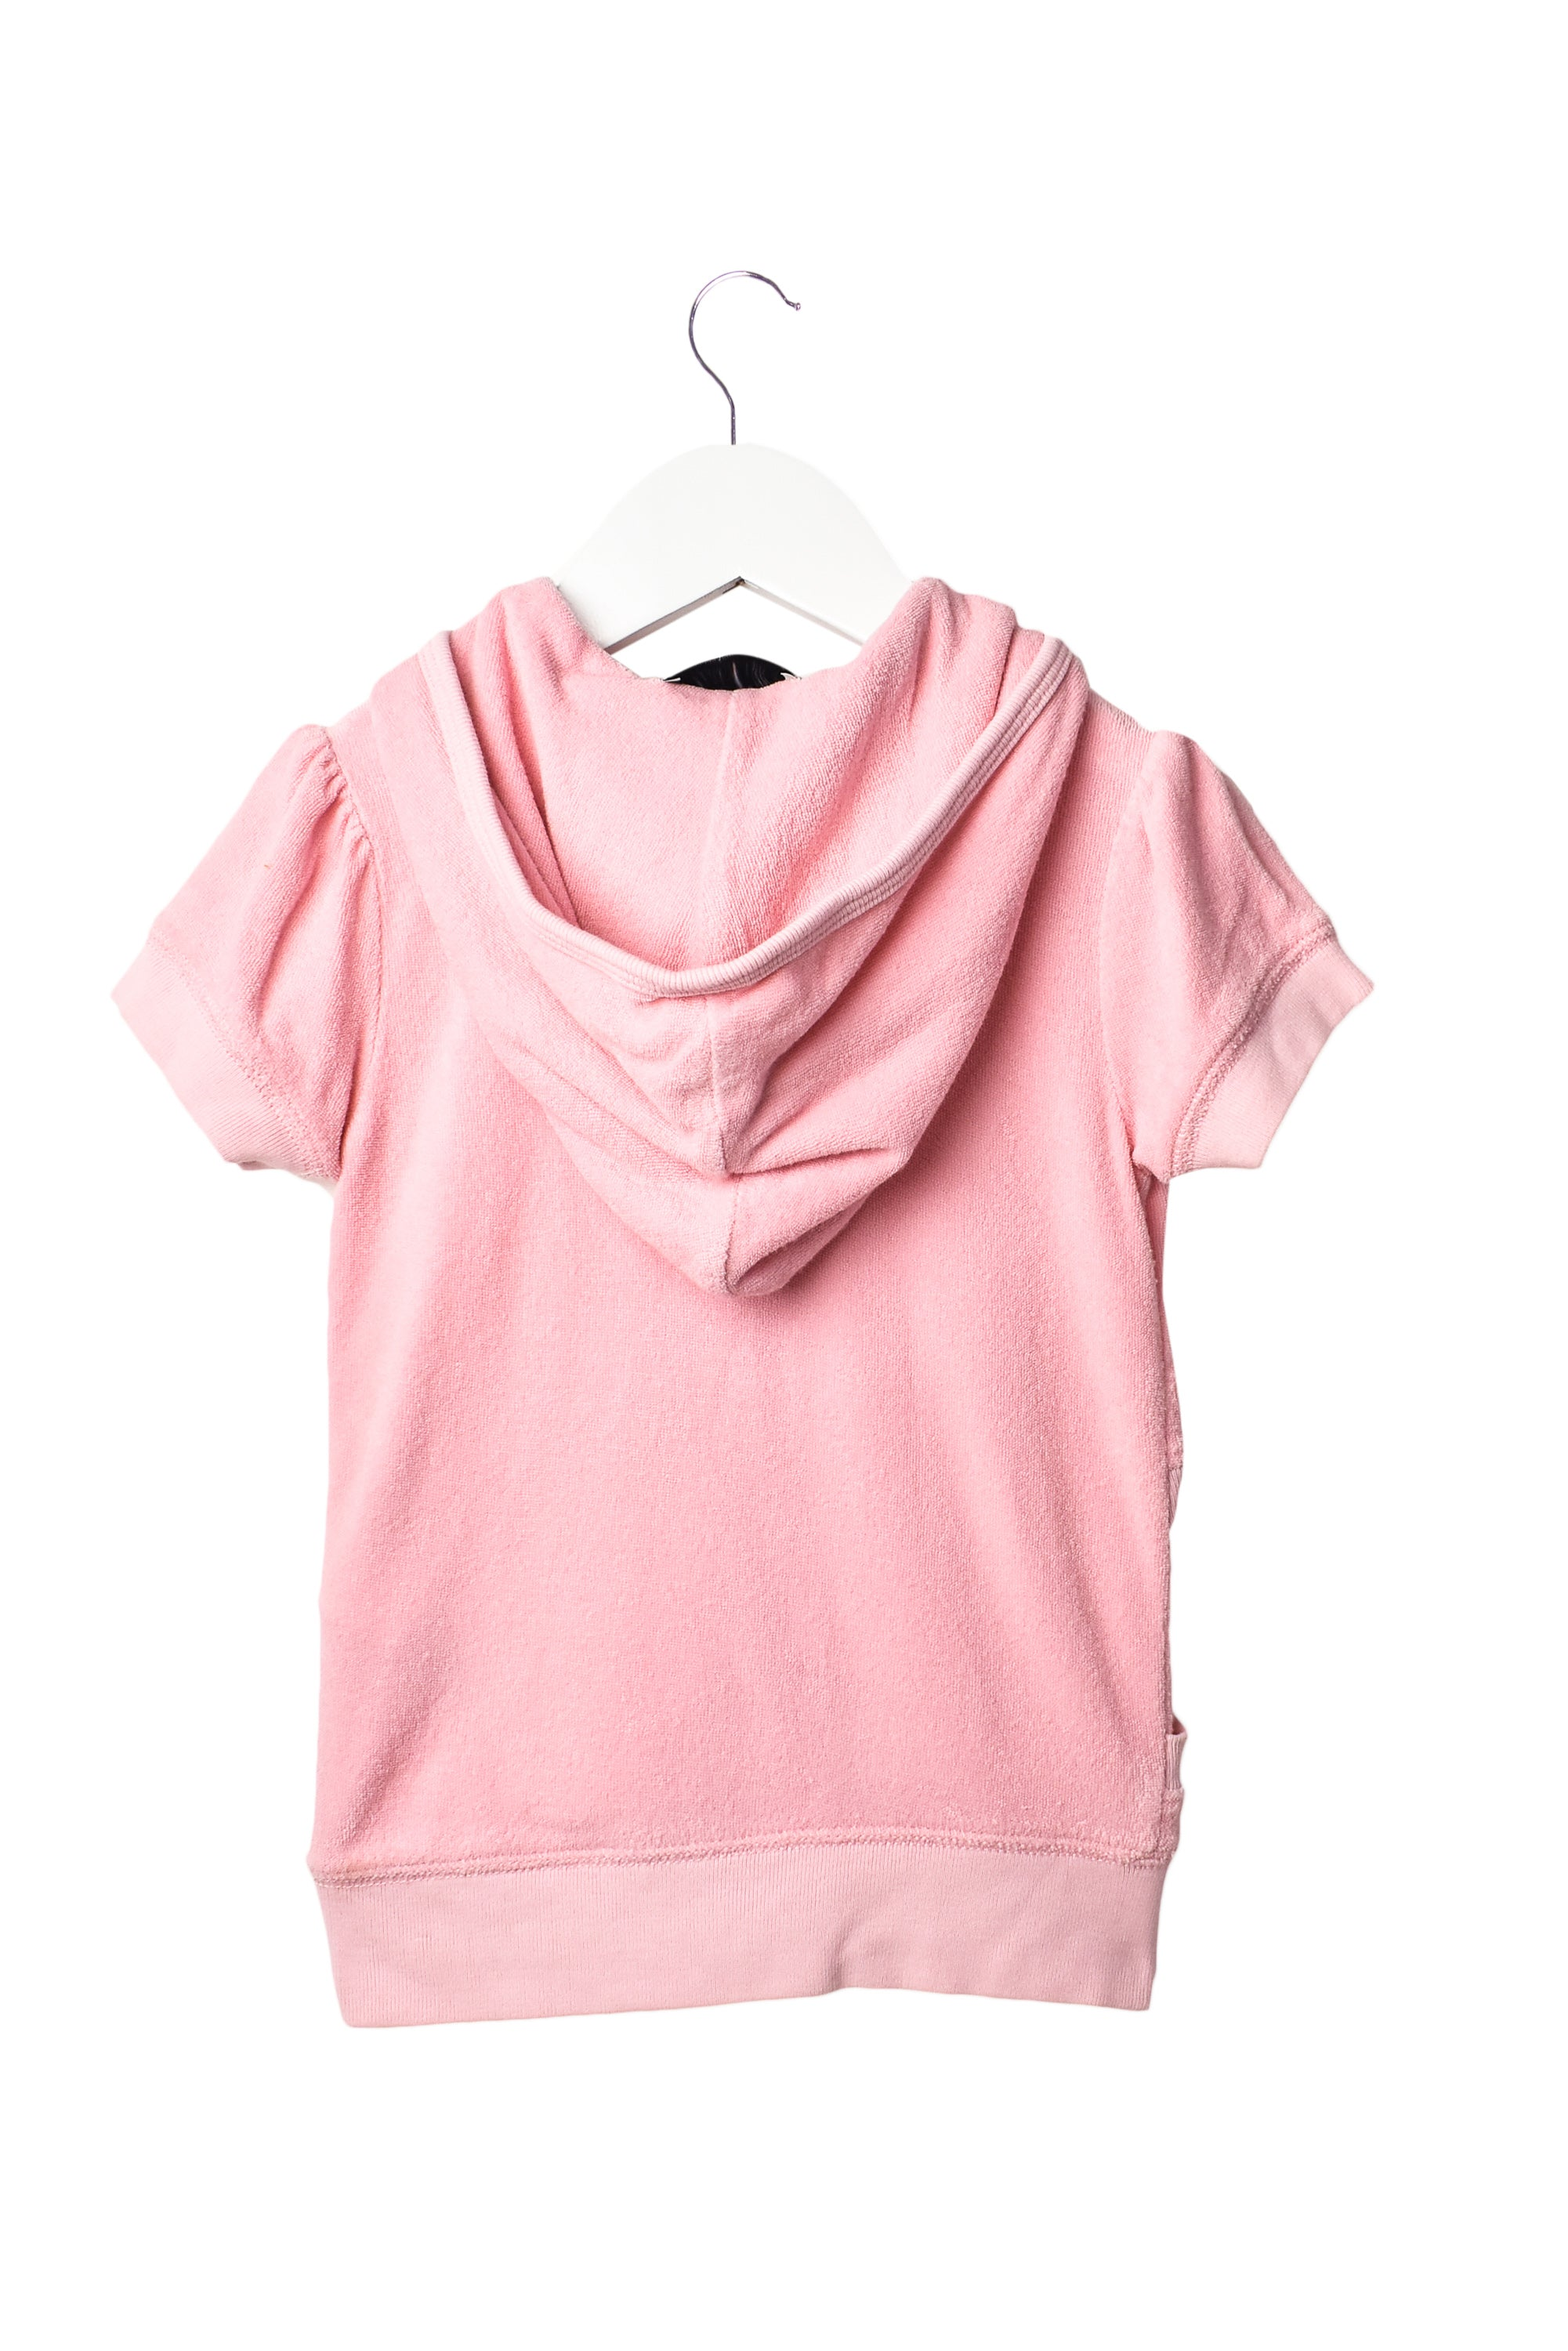 10006256 Juicy Couture Kids~Sweatshirt 4T at Retykle